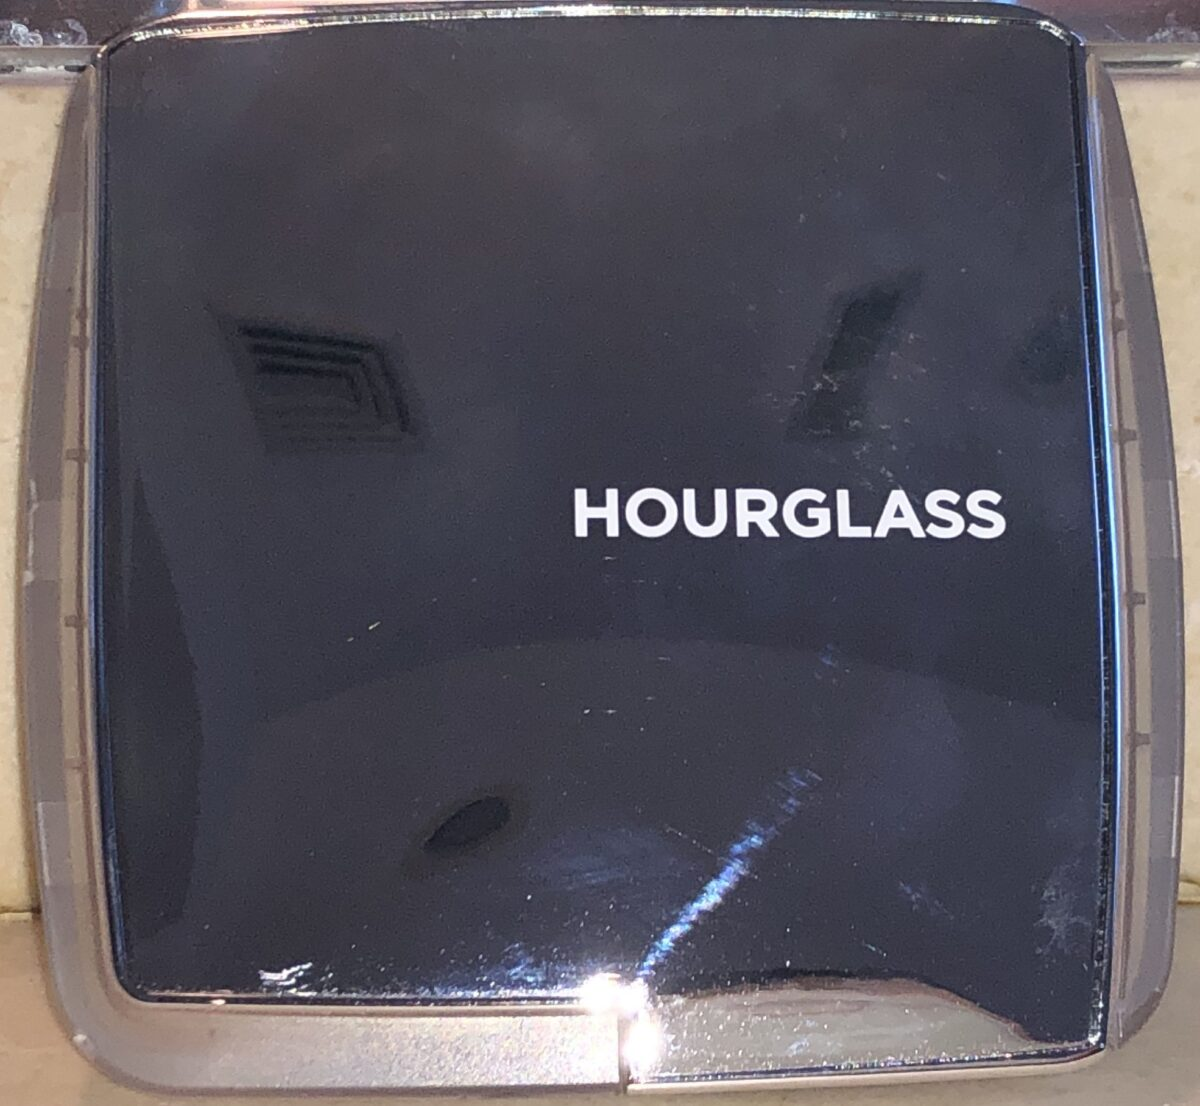 THE HOURGLASS GHOST BLUSH PALETTE CASE TOP IS MIRRORED SILVER, AND BOTTOM IS TRANSLUCENT, GHOSTLY PLASTIC